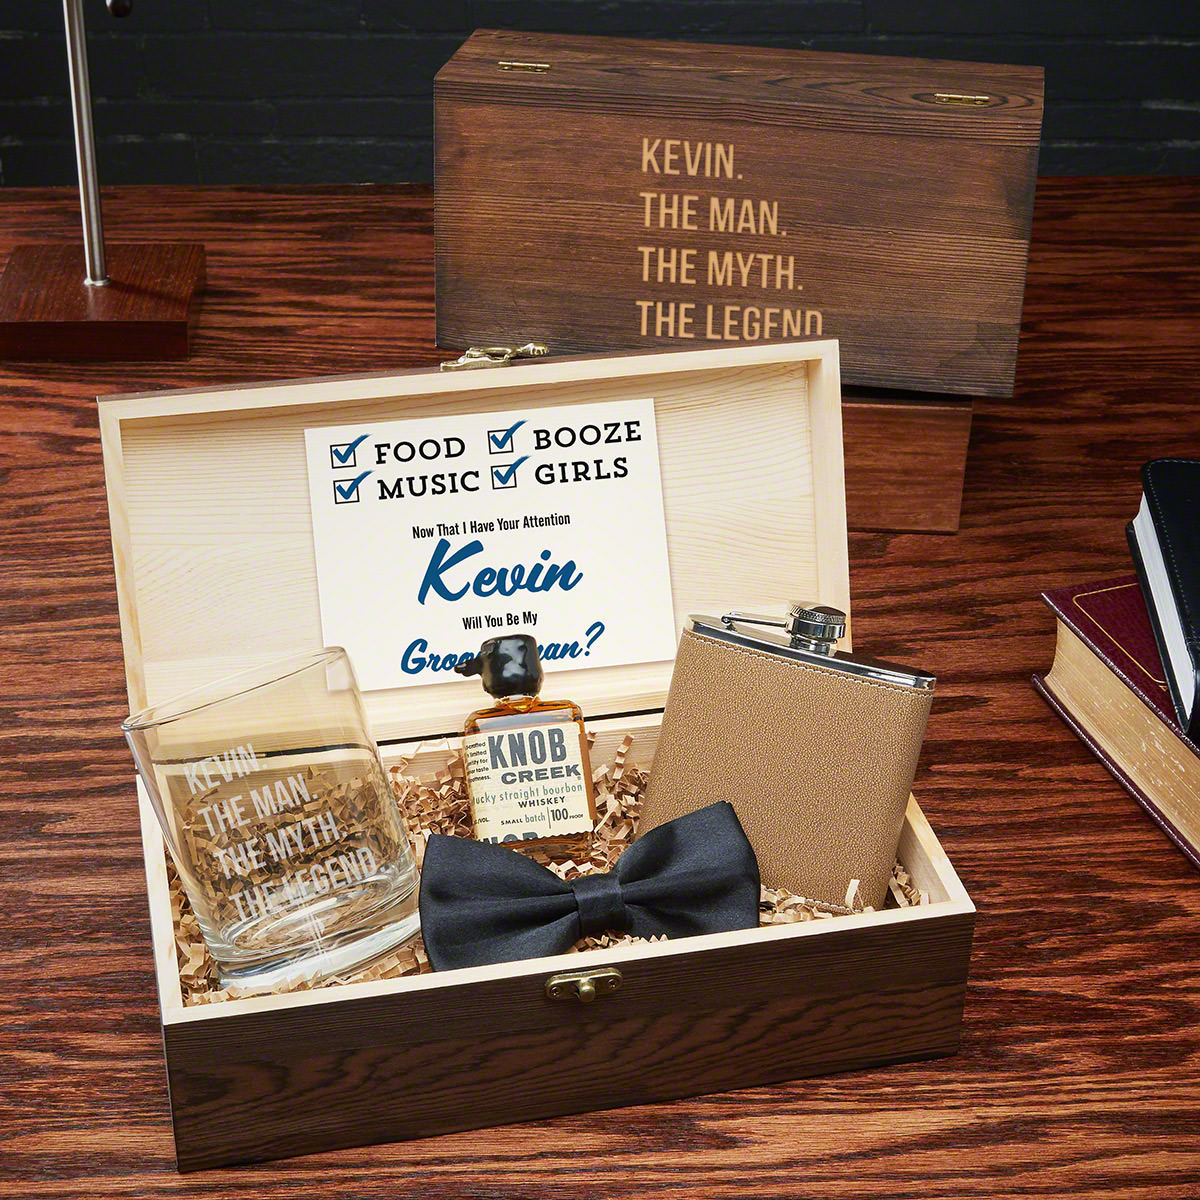 Best ideas about Groomsmen Gift Box Ideas . Save or Pin Man the Myth Personalized Groomsmen Gift Box Set Now.